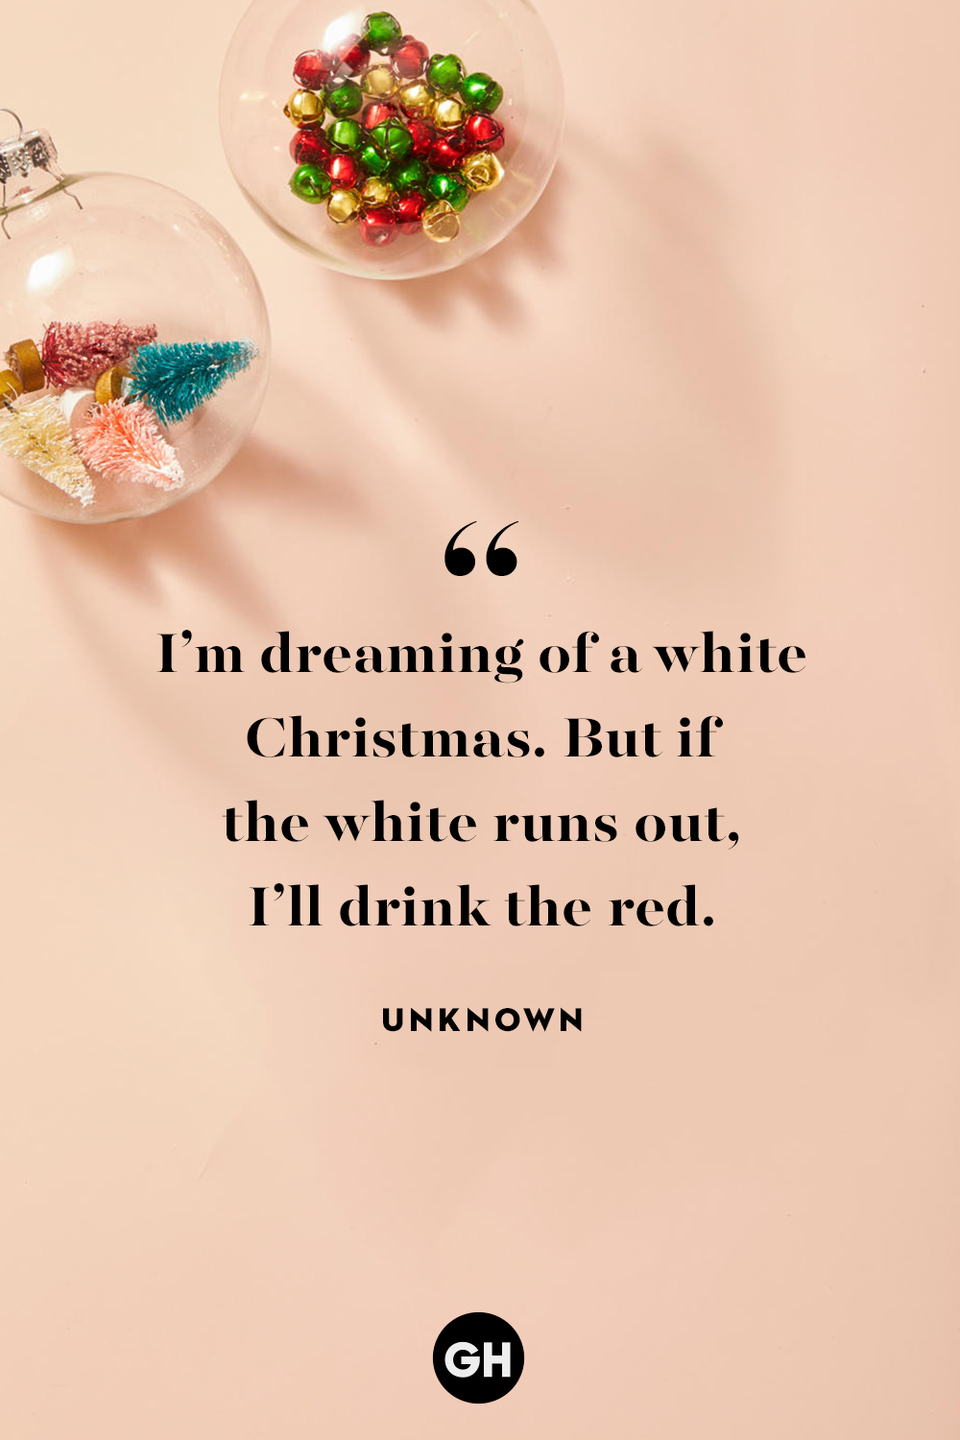 <p>I'm dreaming of a white Christmas. But if the white runs out, I'll drink the red.</p>